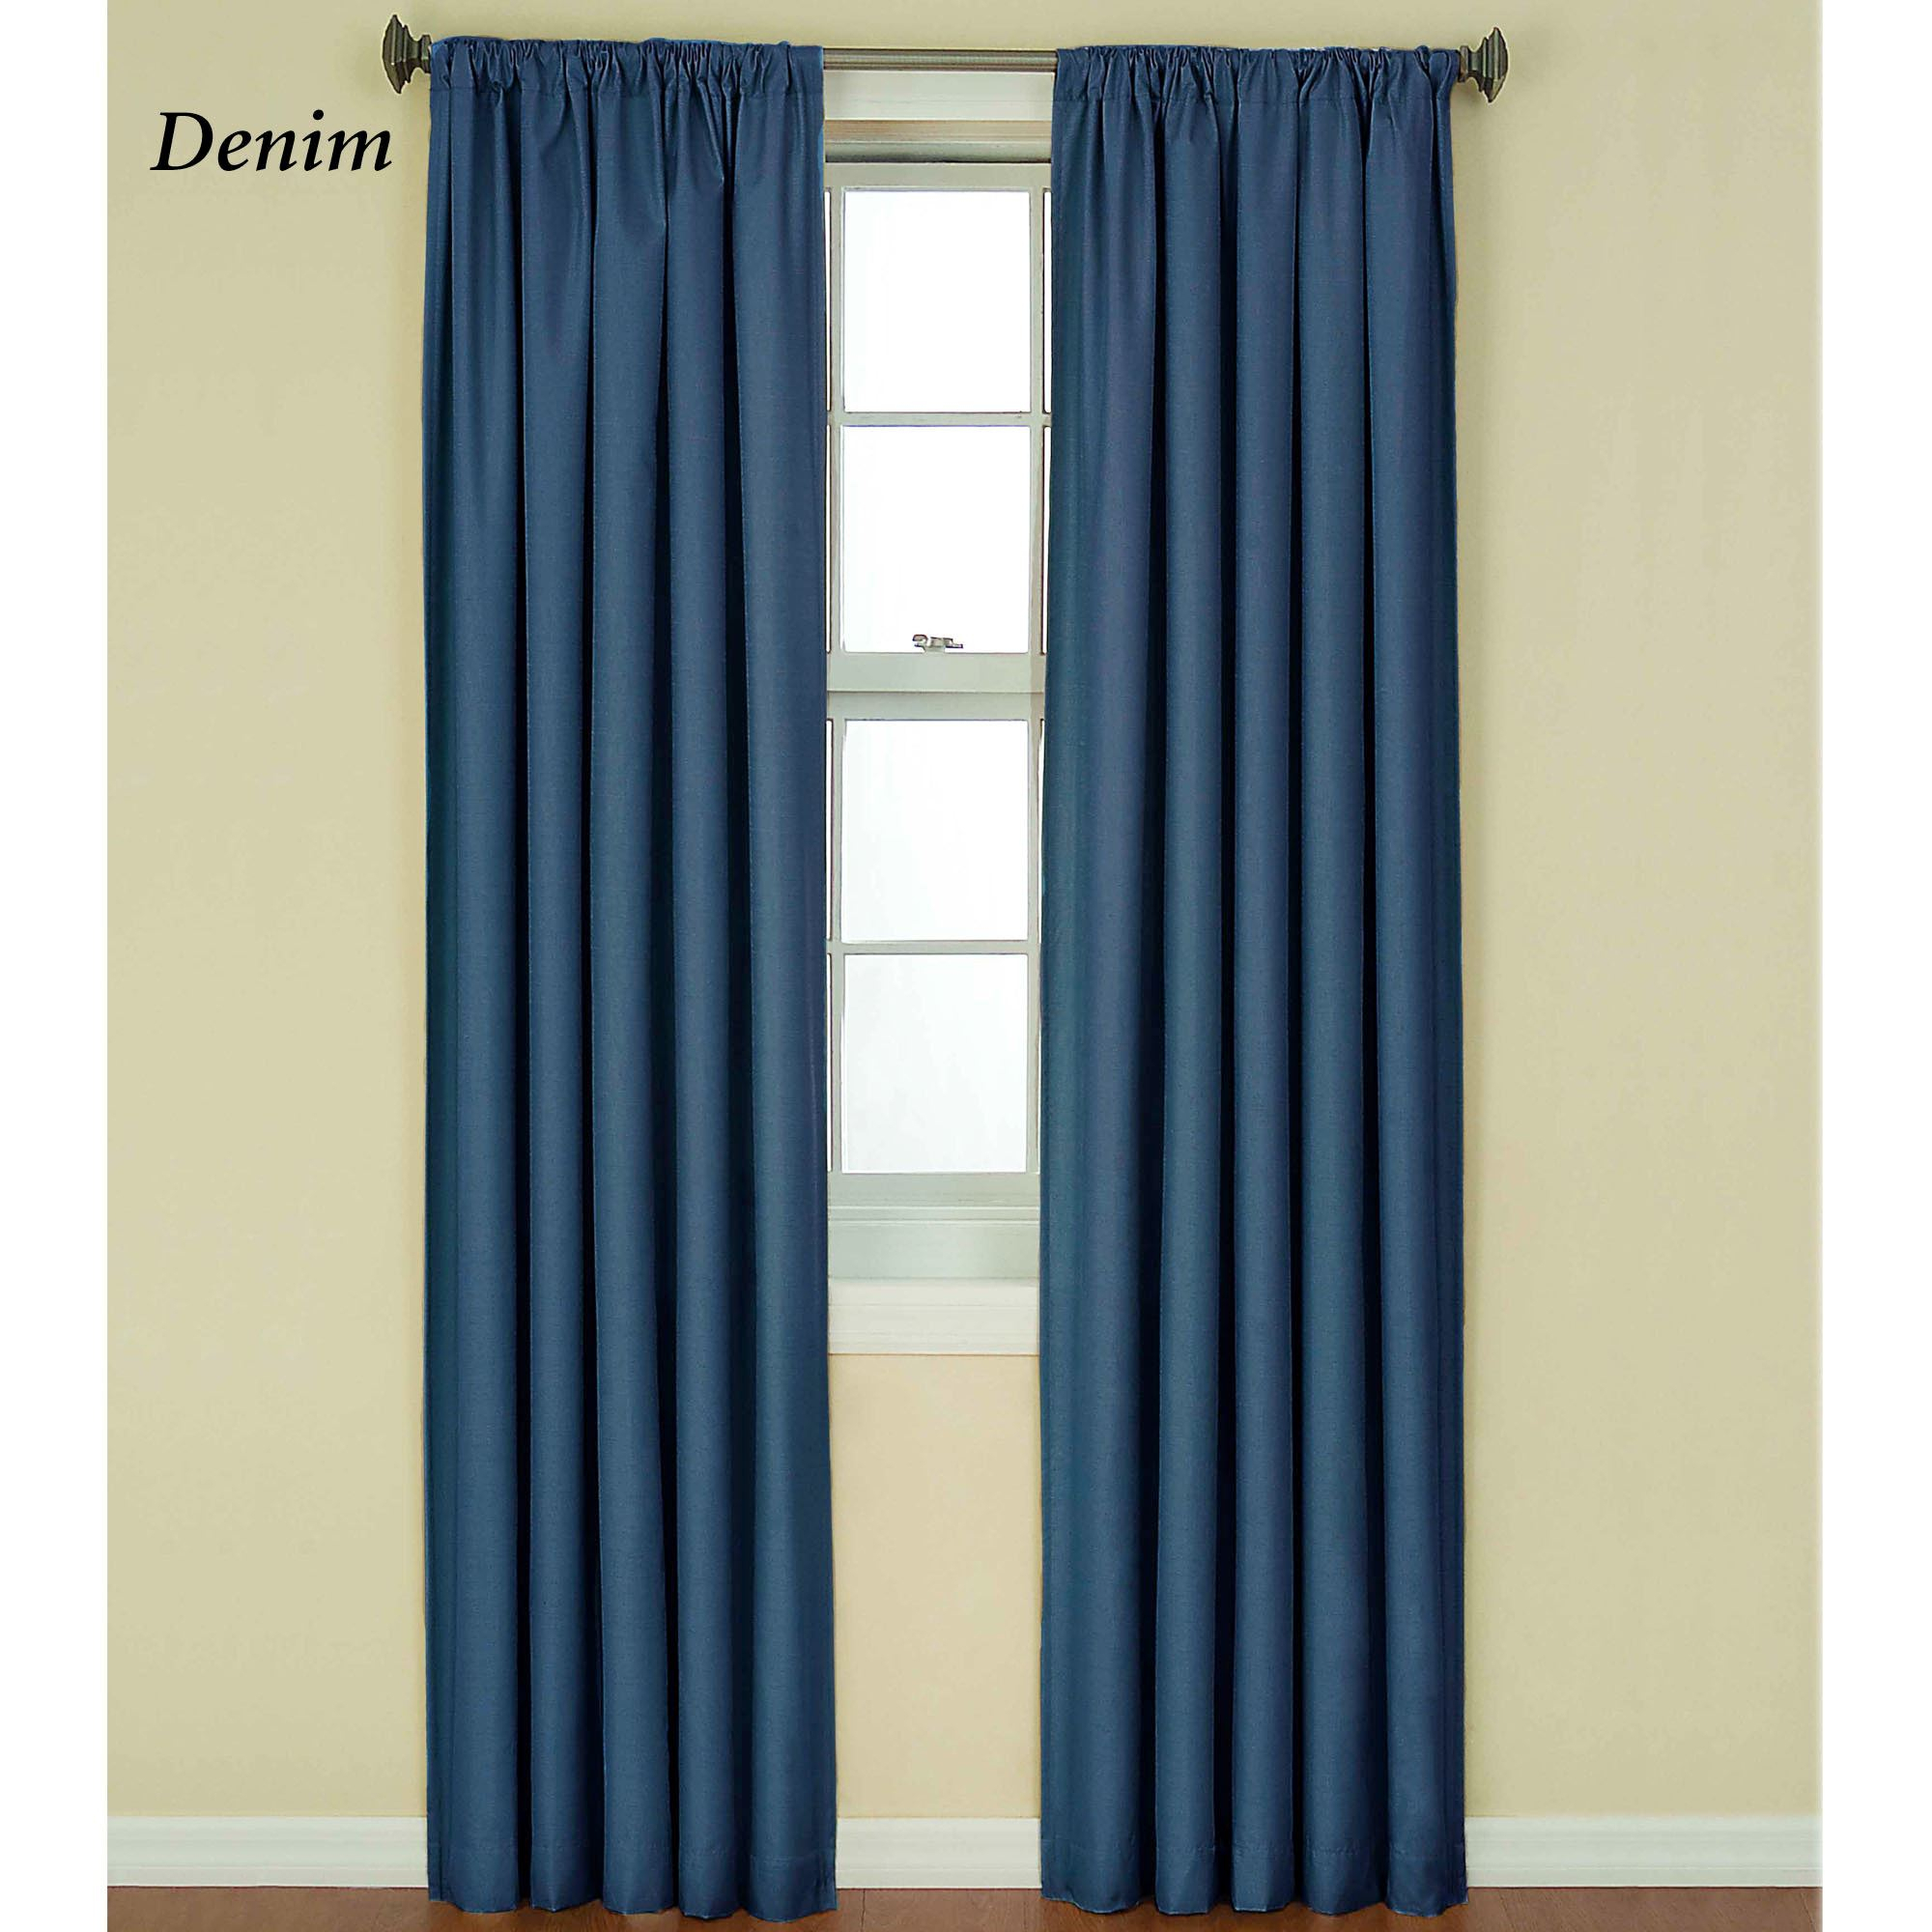 Kendall Bright Thermaback(Tm) Blackout Curtain Panel With Eclipse Kendall Blackout Window Curtain Panels (Gallery 15 of 20)